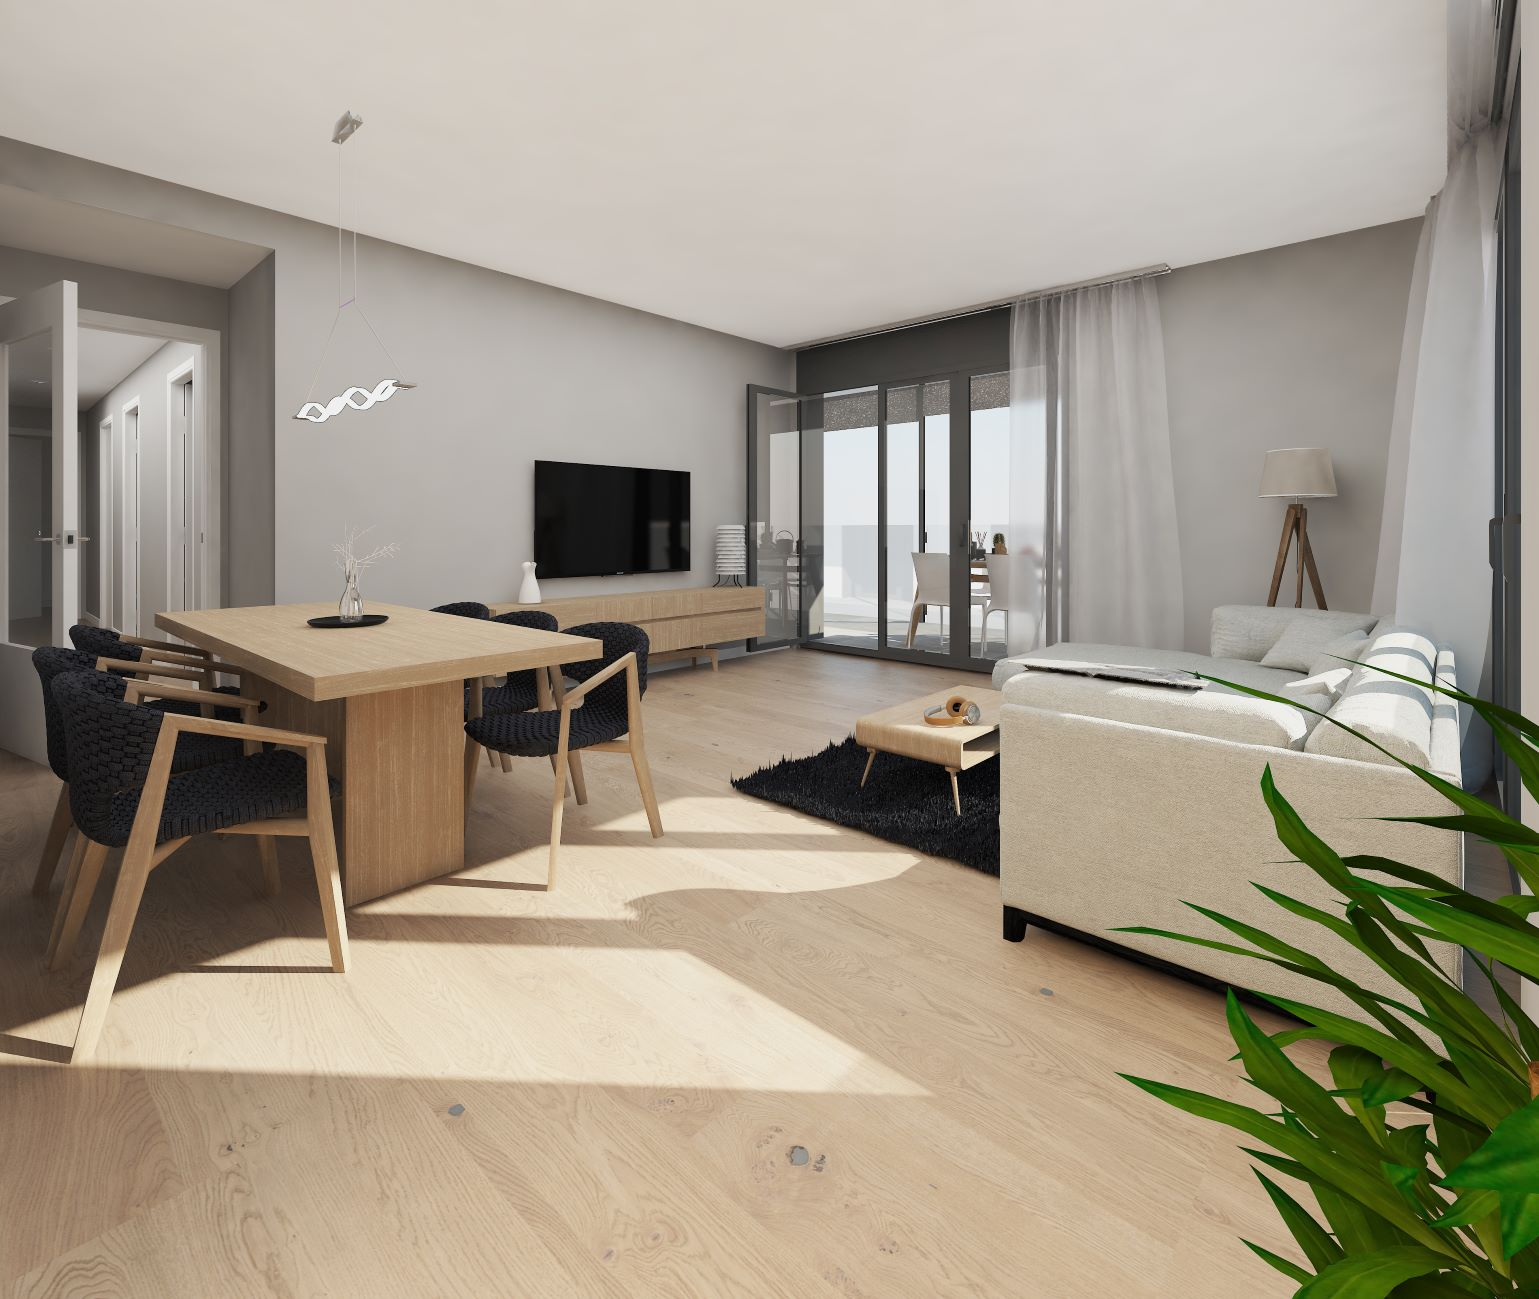 Apartment in Barcelona - poble nou. Private parking, Private swimming pool.2 bedrooms. For sale: 349.000 €.